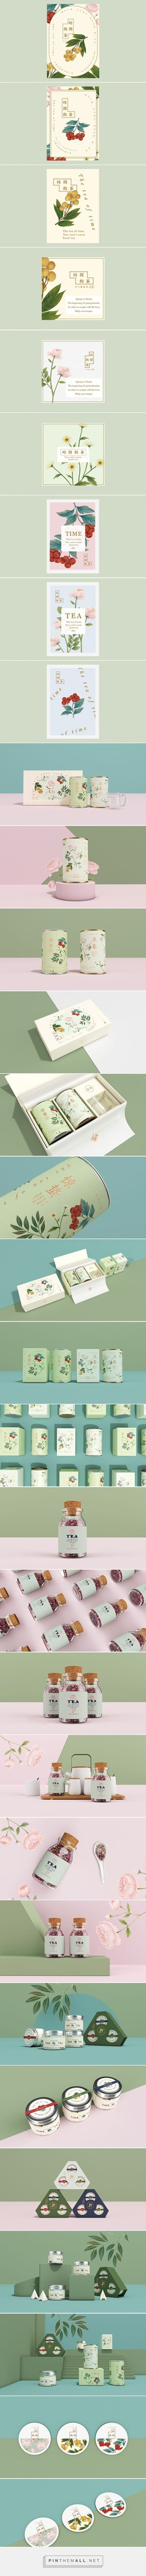 Tea of Time Tea Branding and Packaging by Hellocean